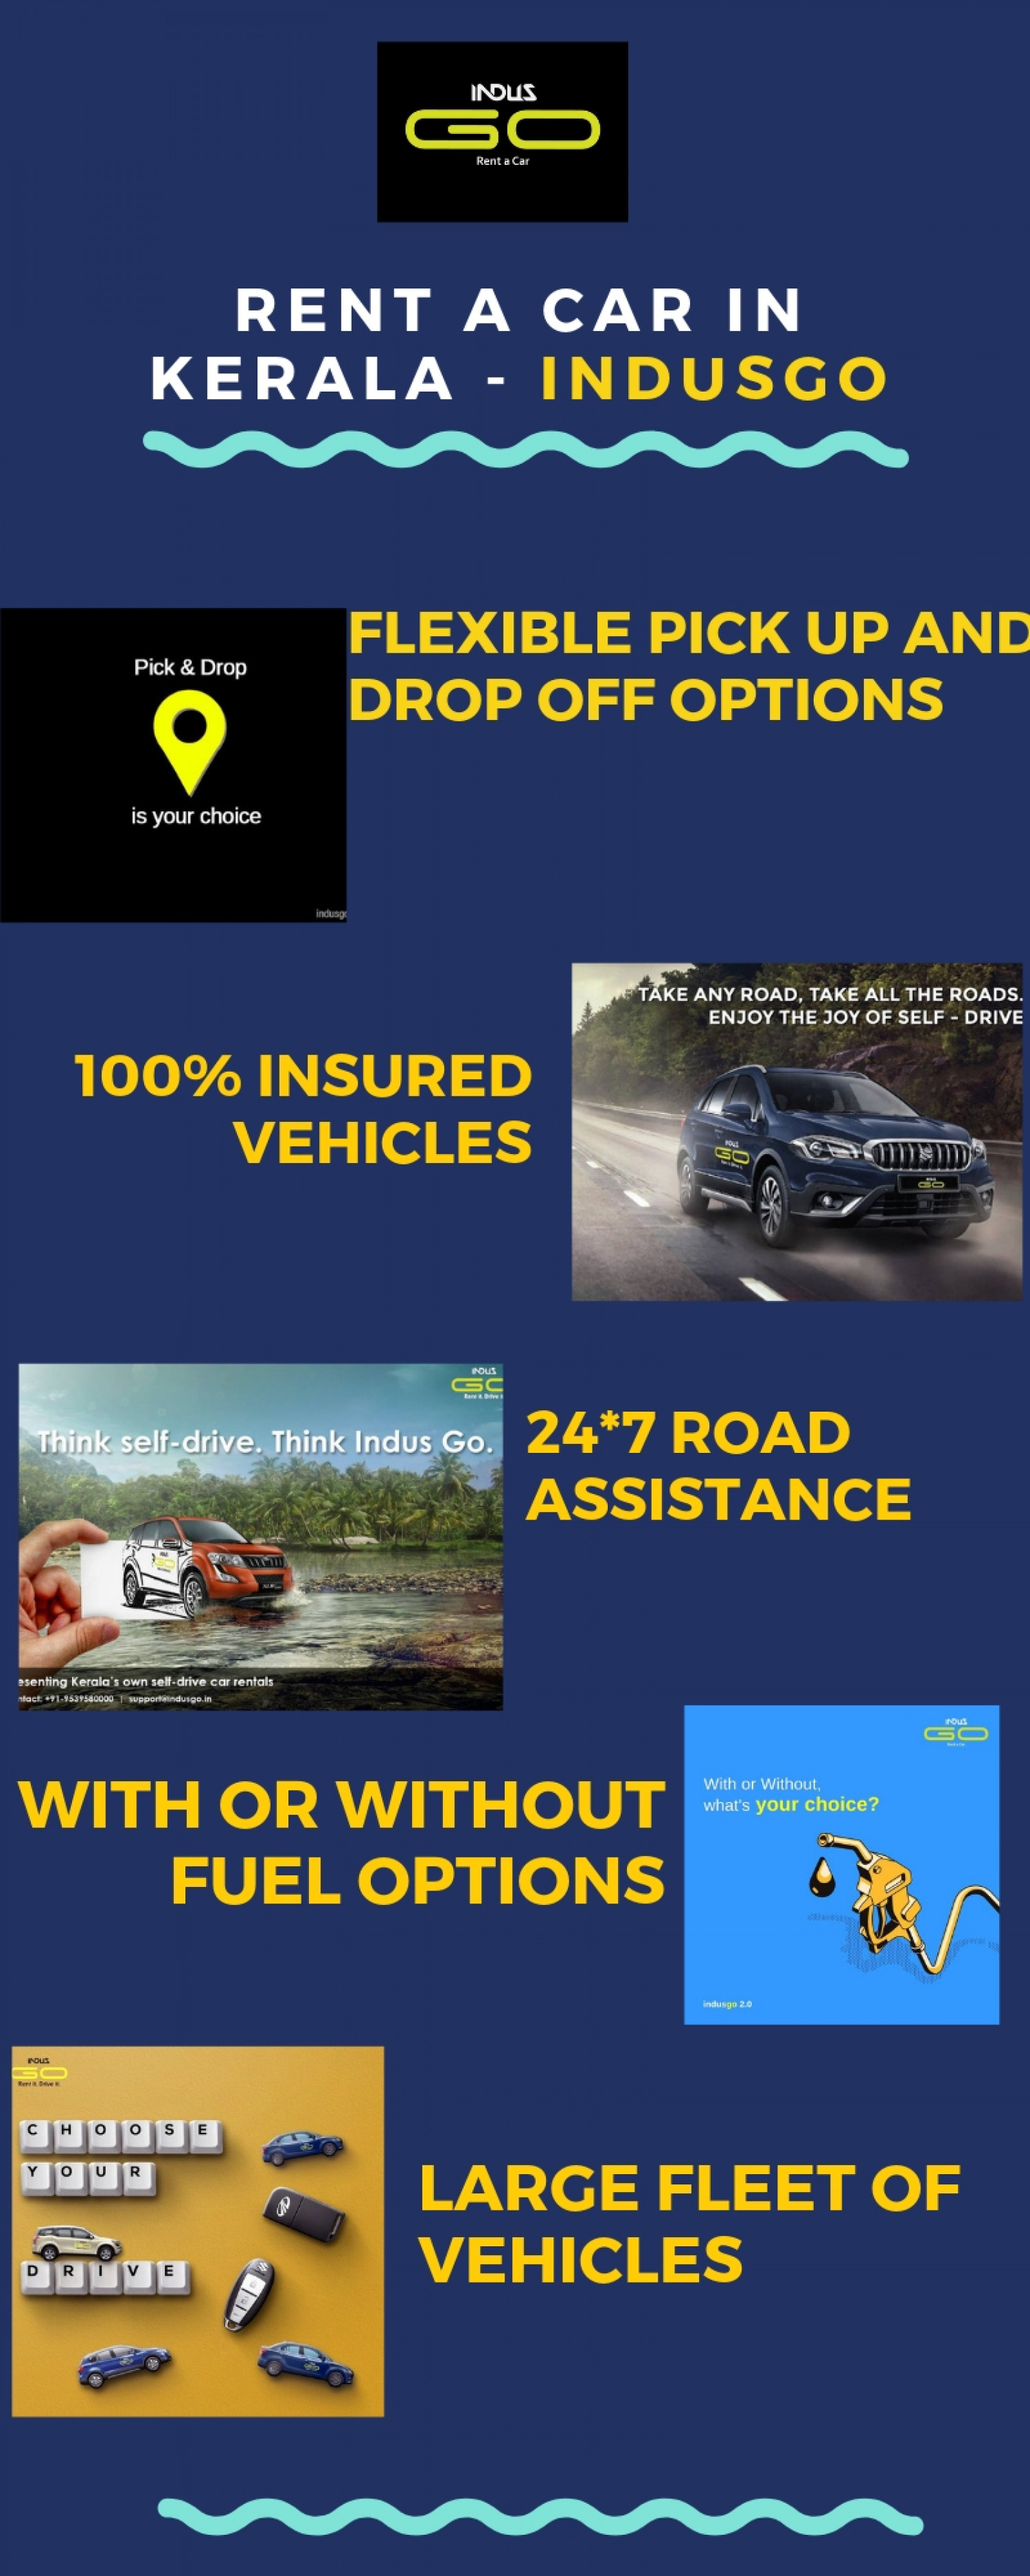 Rent a Car in Kerala - IndusGo Infographic